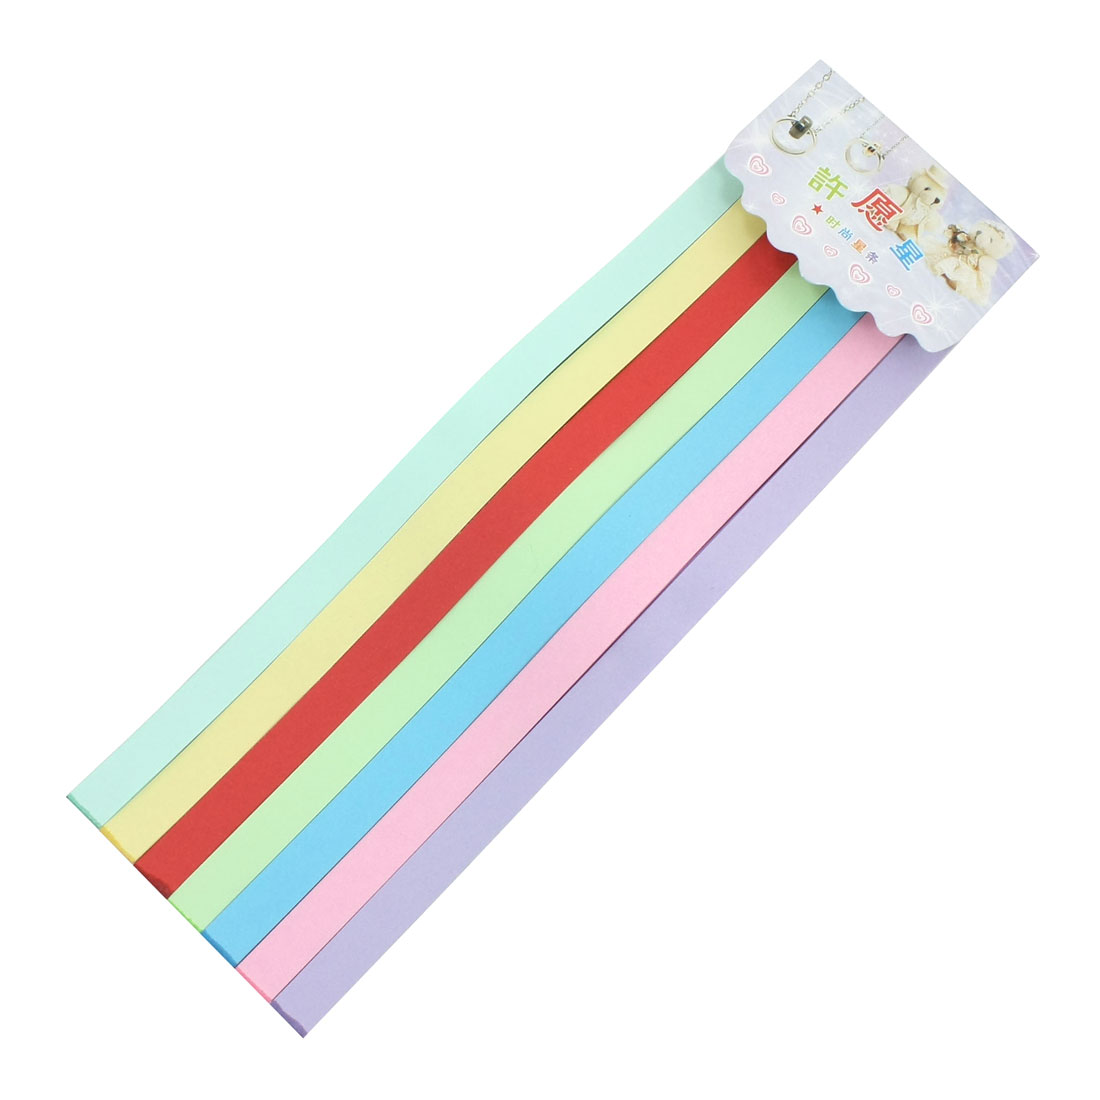 Lucky Wish Star DIY 7 Color Origami Paper Folding Strips 49Pcs